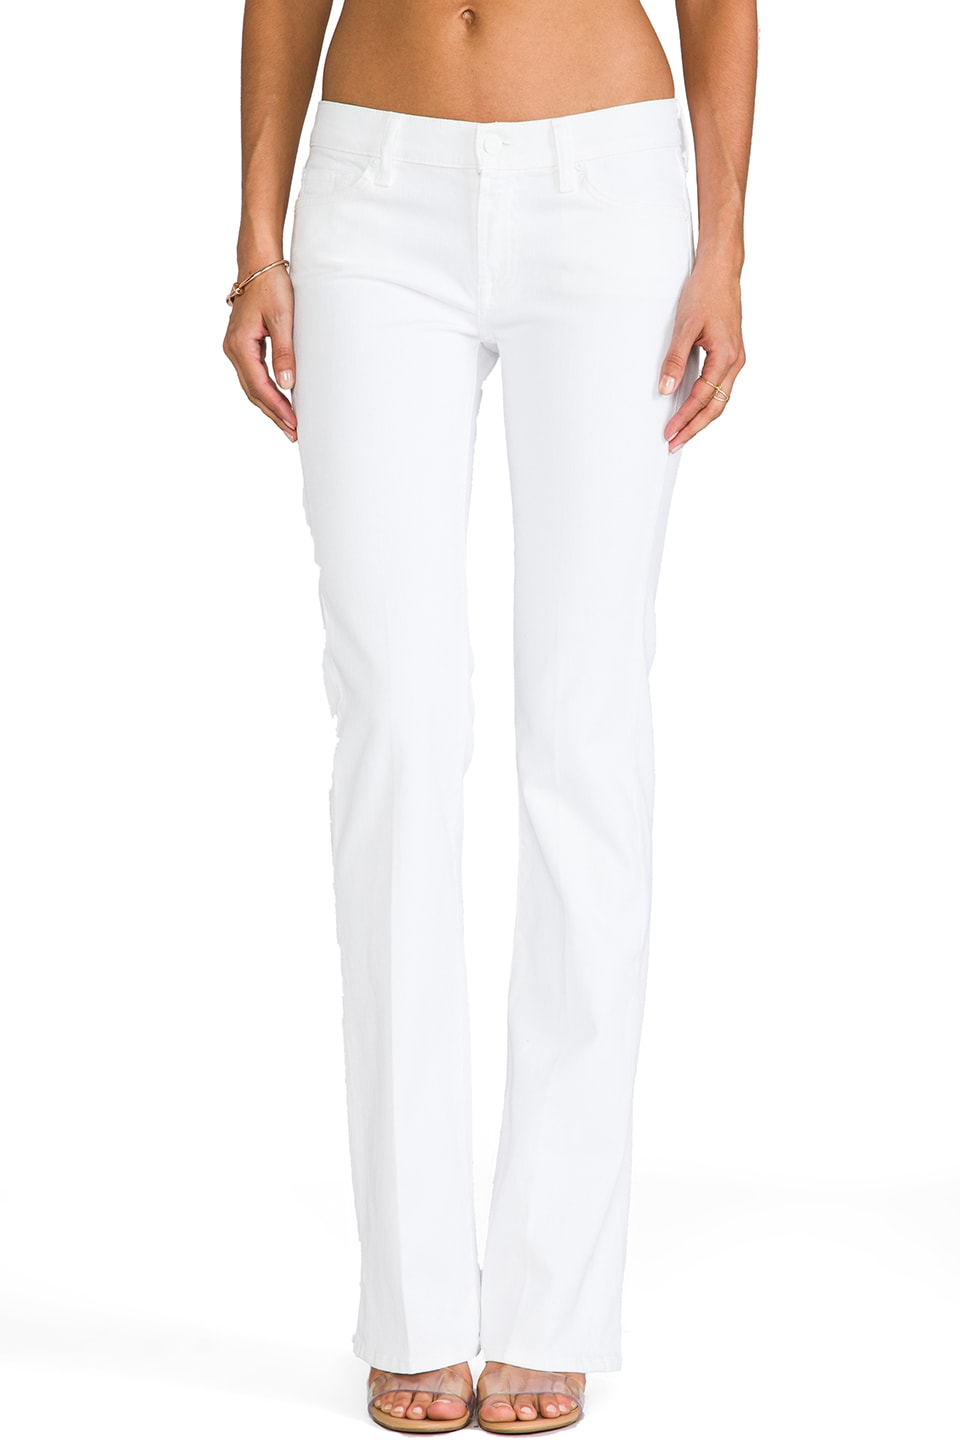 7 For All Mankind Bootcut in Clean White